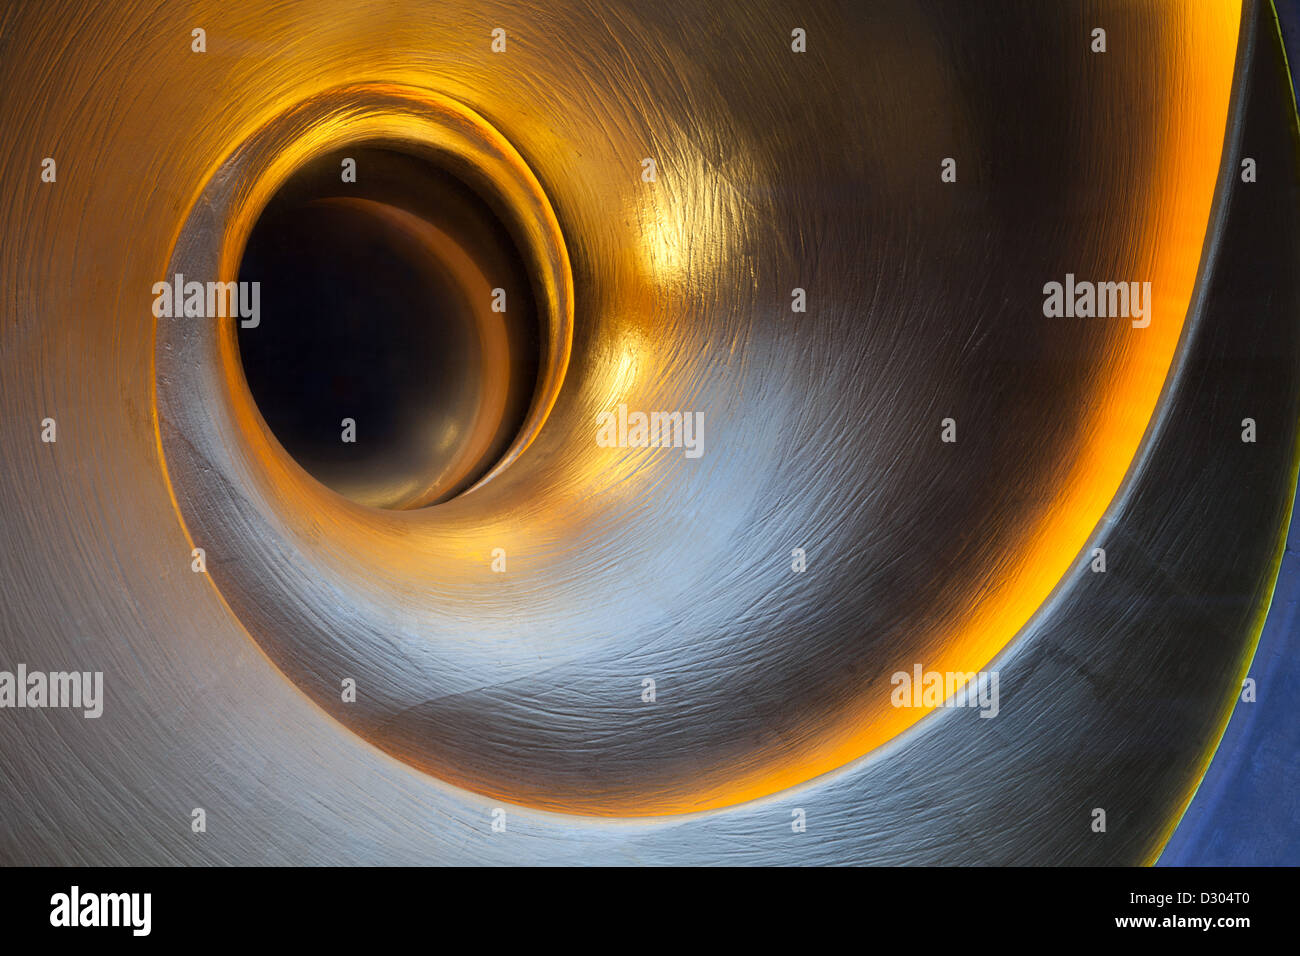 Close up of Helix or Sculpture, Cambridge, UK Hôtel Varsity Photo Stock